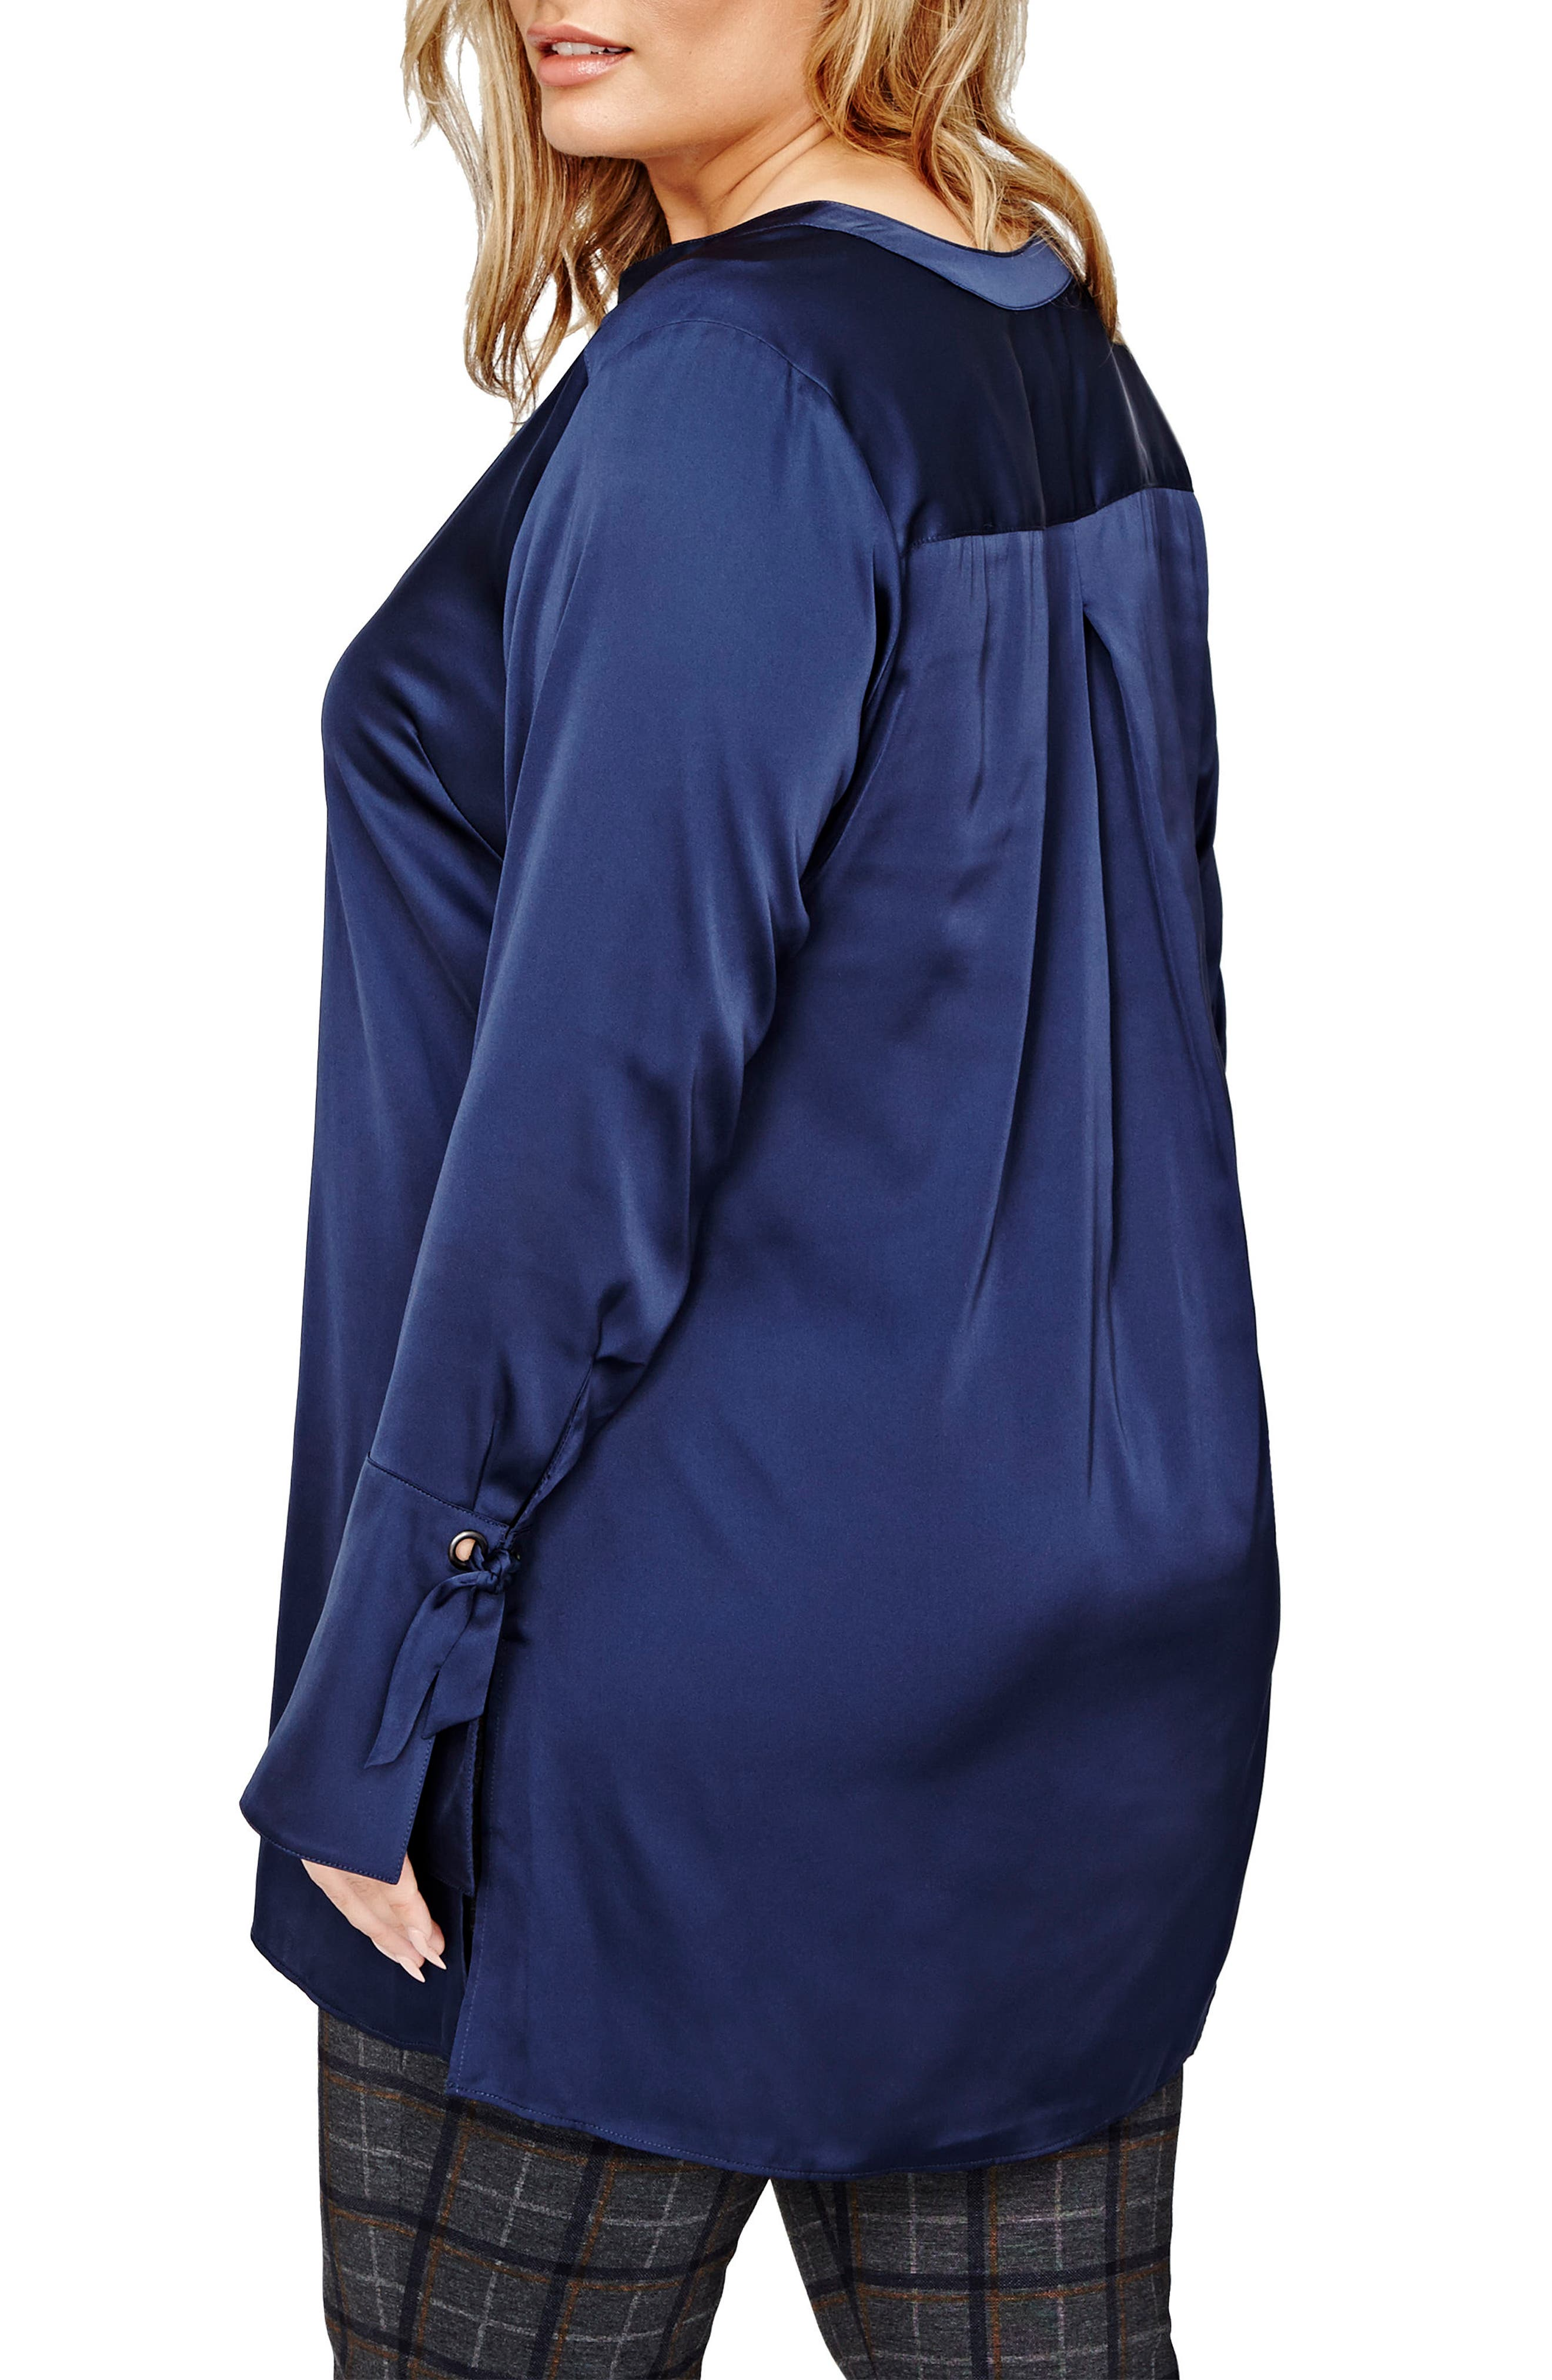 Bell Sleeve Tunic Shirt,                             Alternate thumbnail 2, color,                             Navy Iris